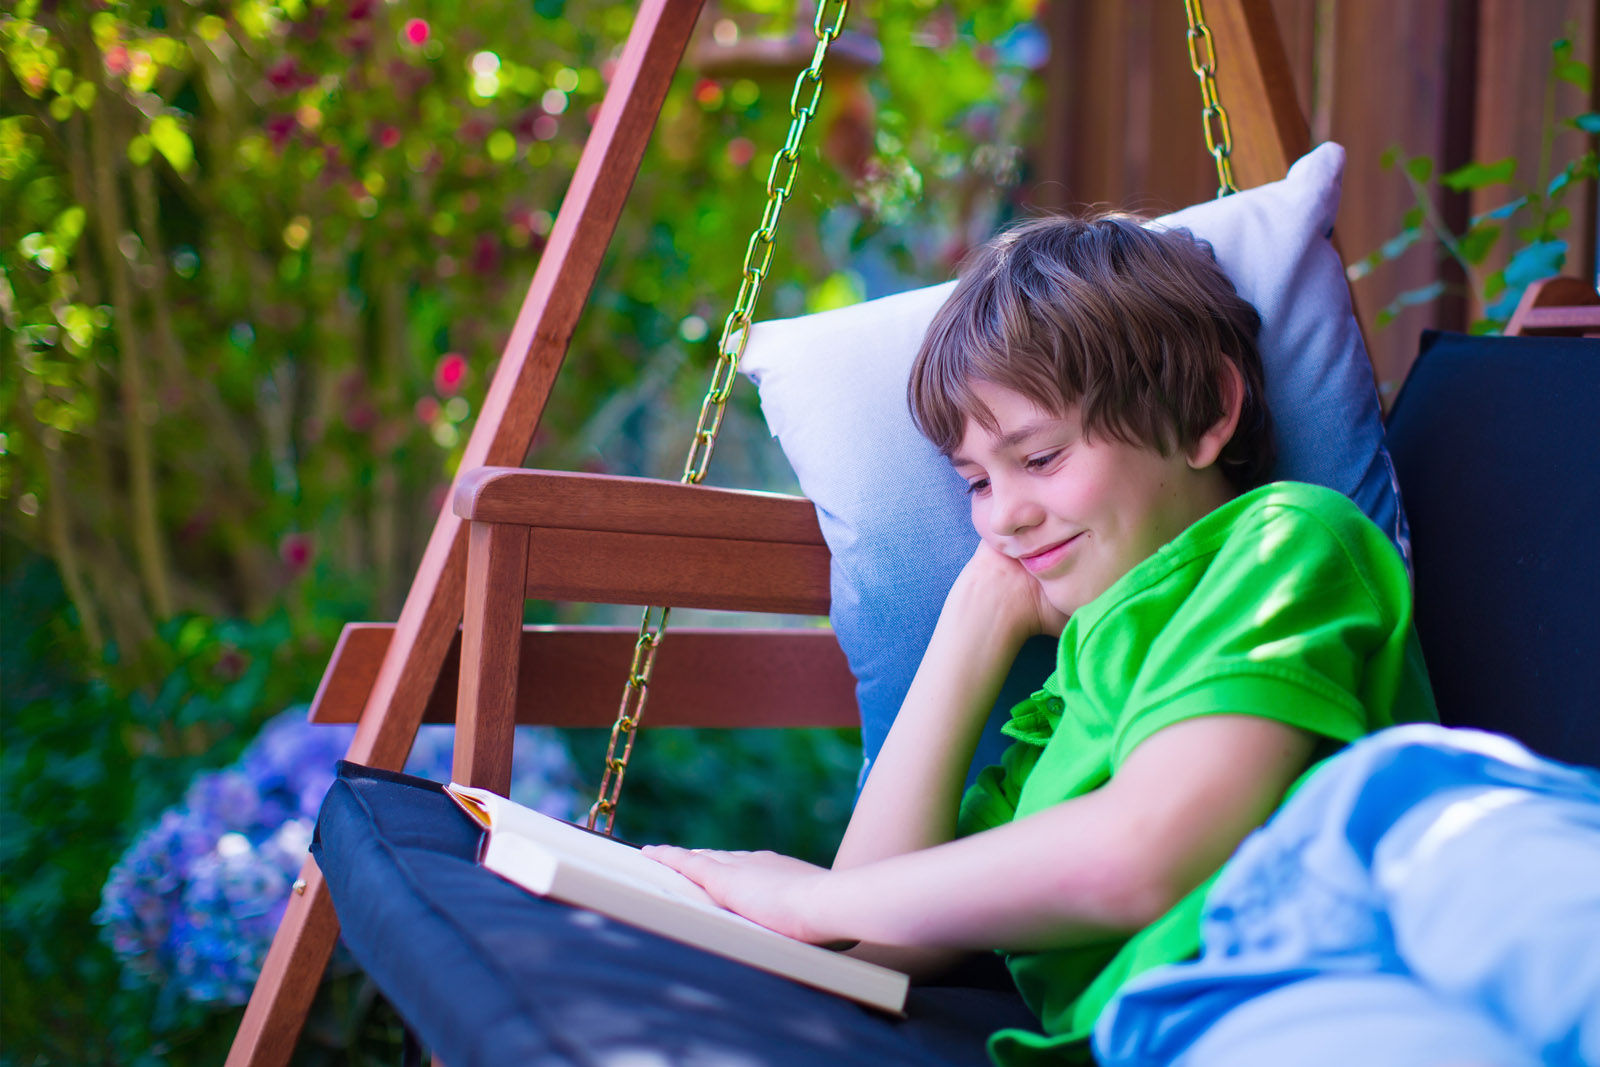 Happy school boy reading a book in the backyard. Child relaxing in a garden swing with books. Kids read during summer vacation. Children studying. Teenager kid doing homework outdoors. (Thinkstock)